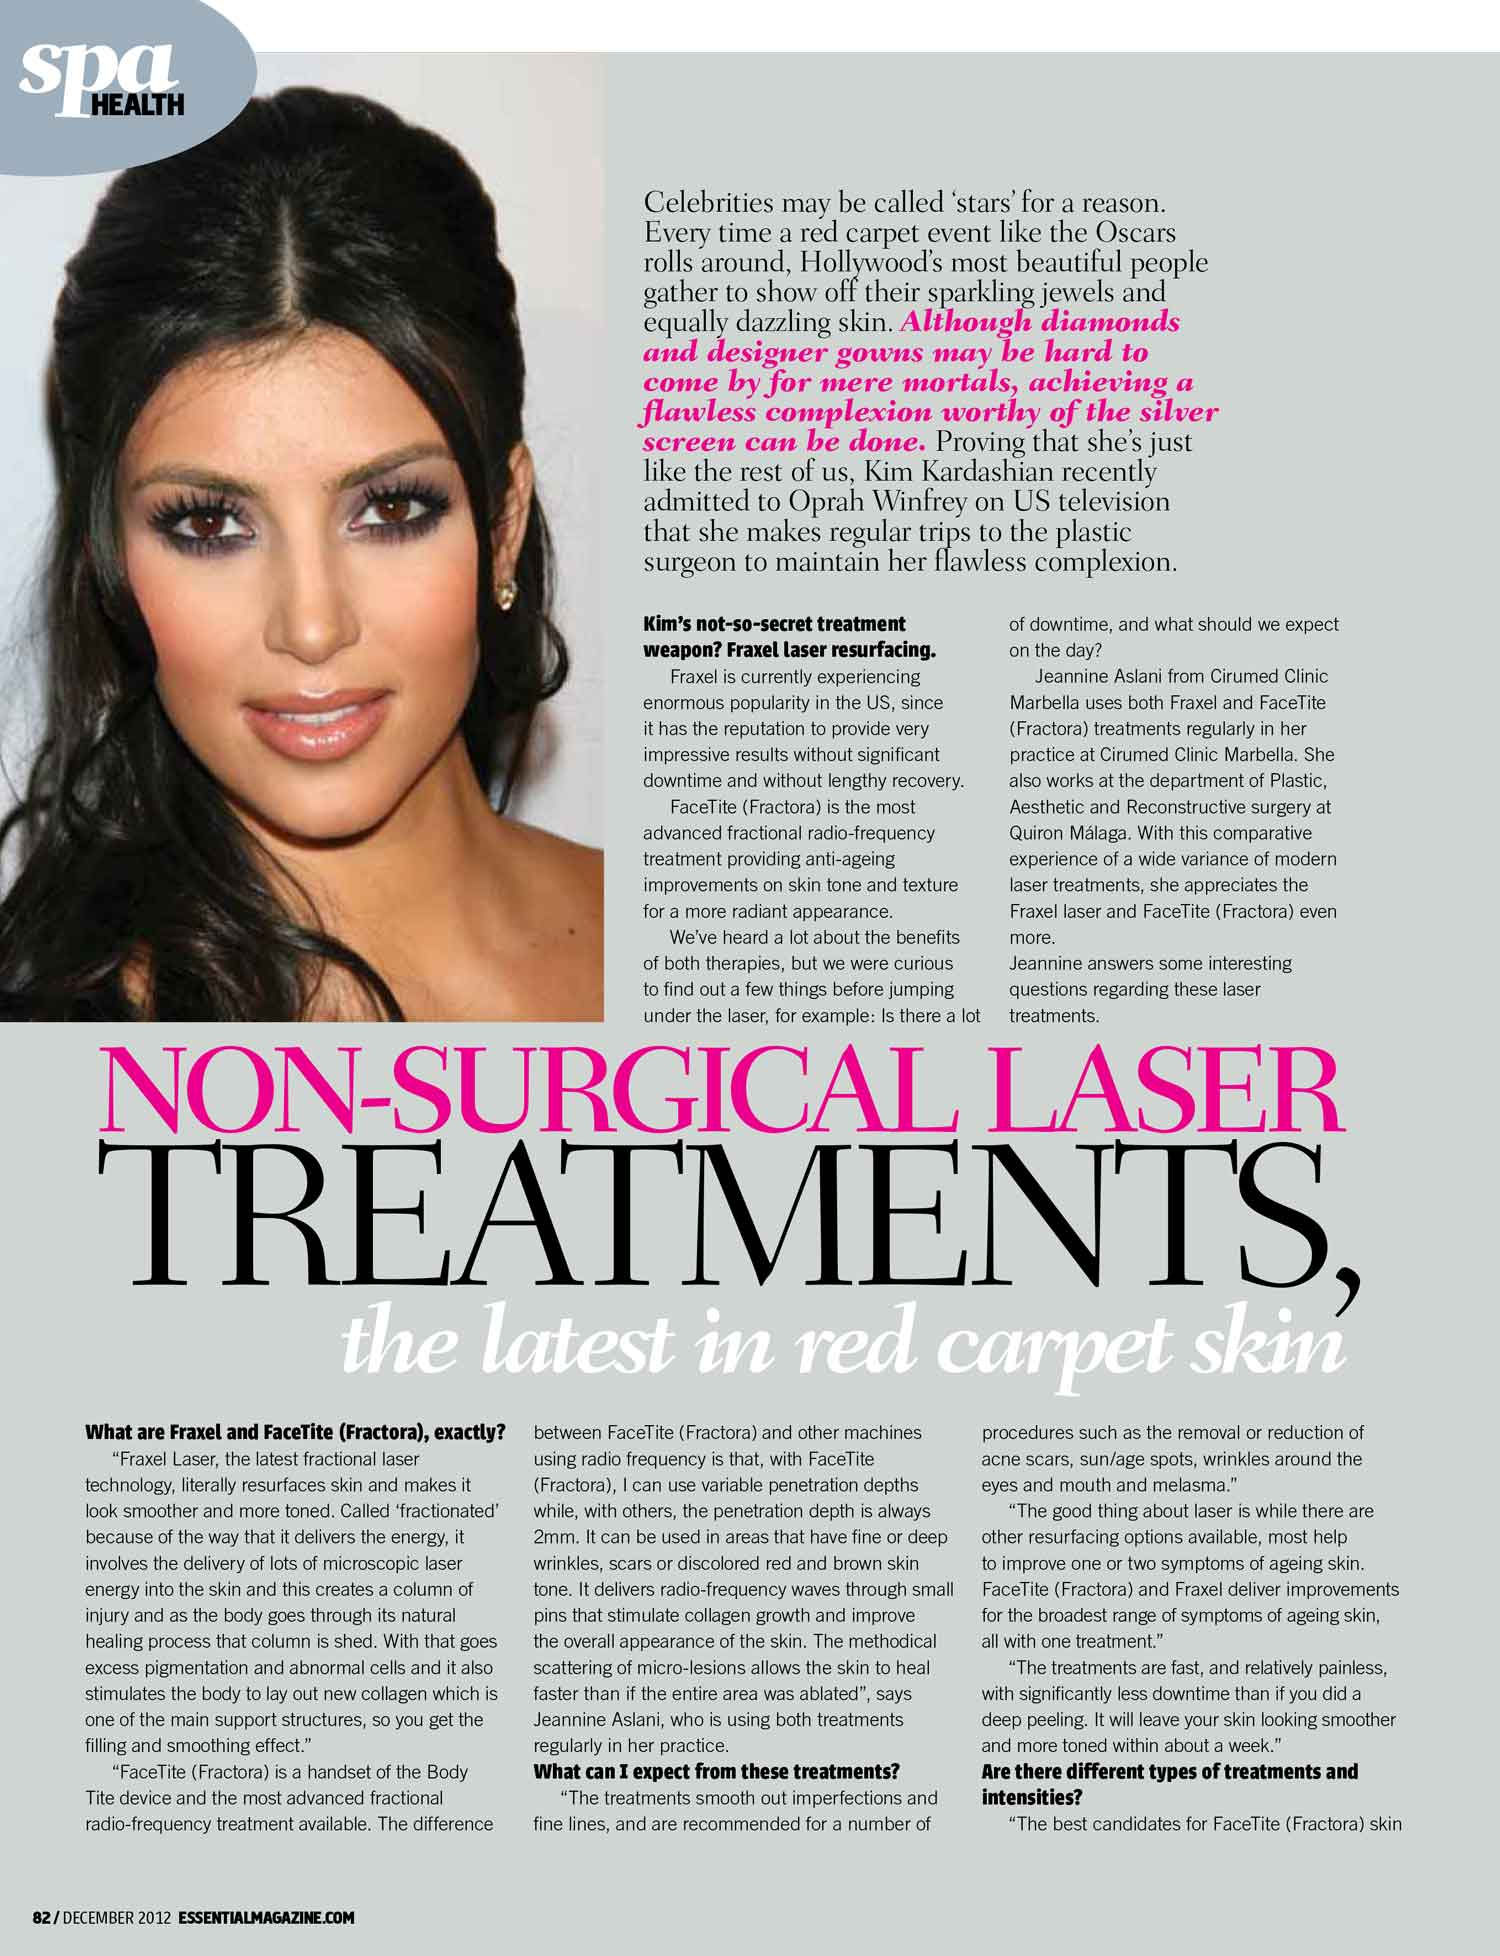 kim-kardashian-skin-treatment-cirumed-clinic